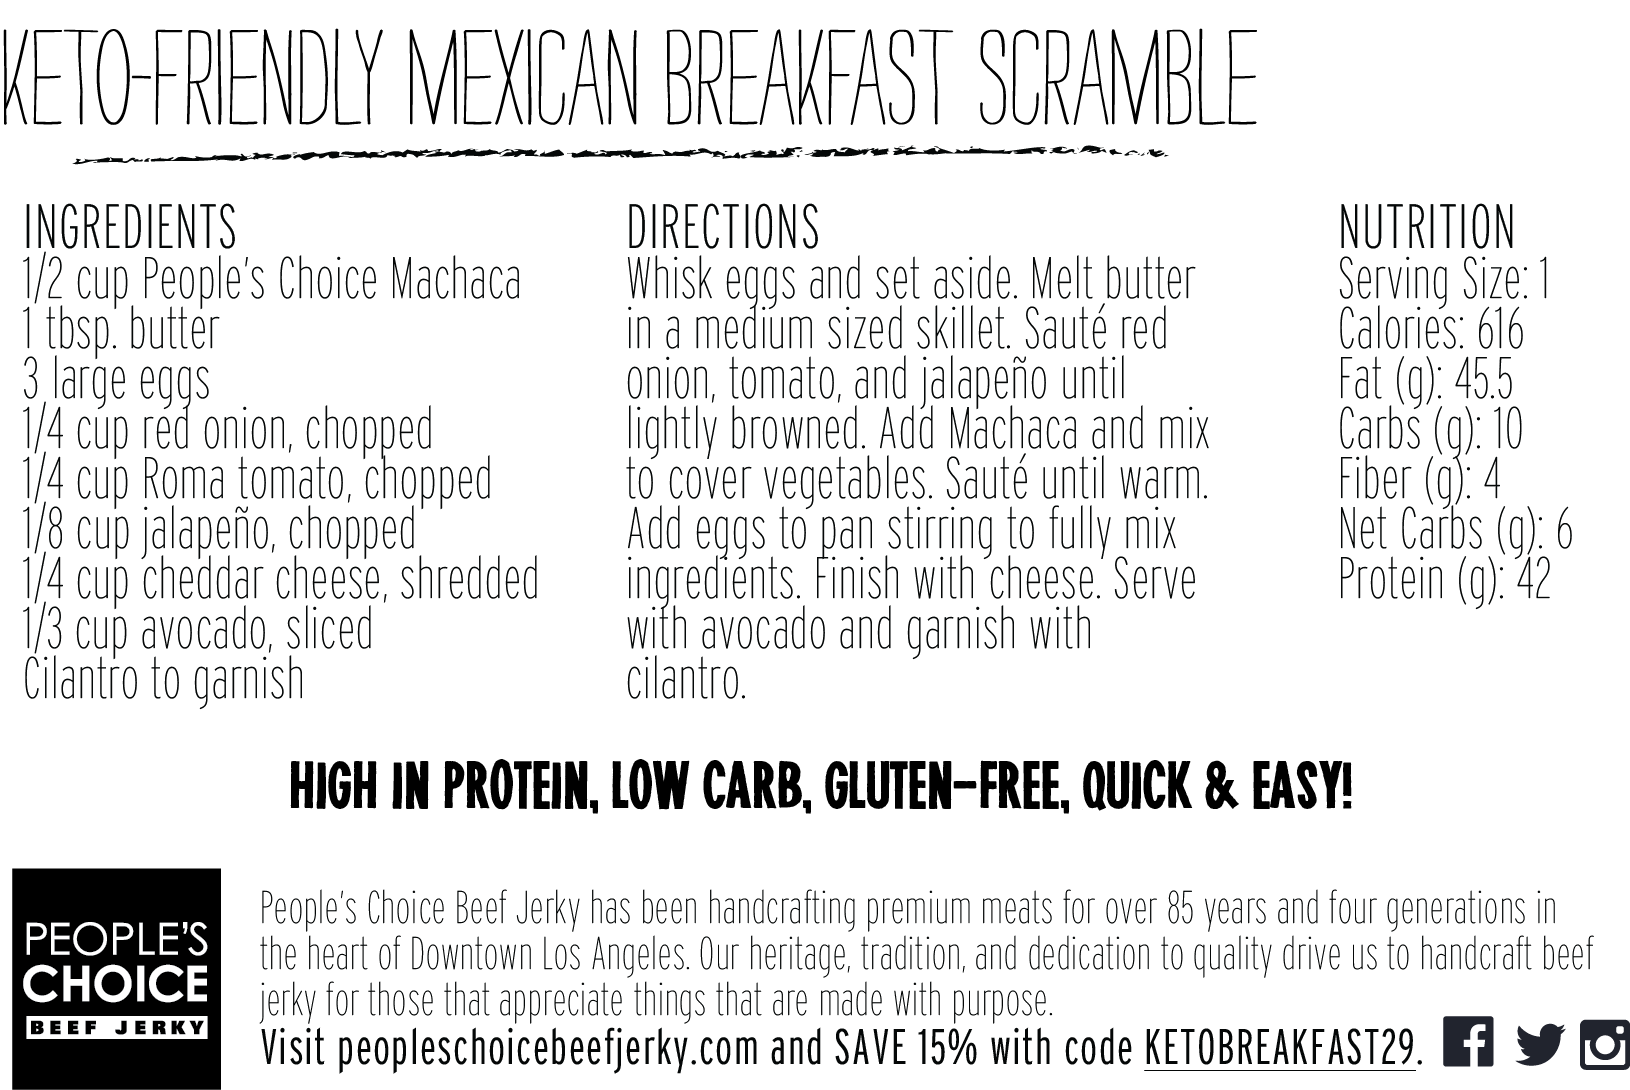 Keto-Friendly Mexican Scramble